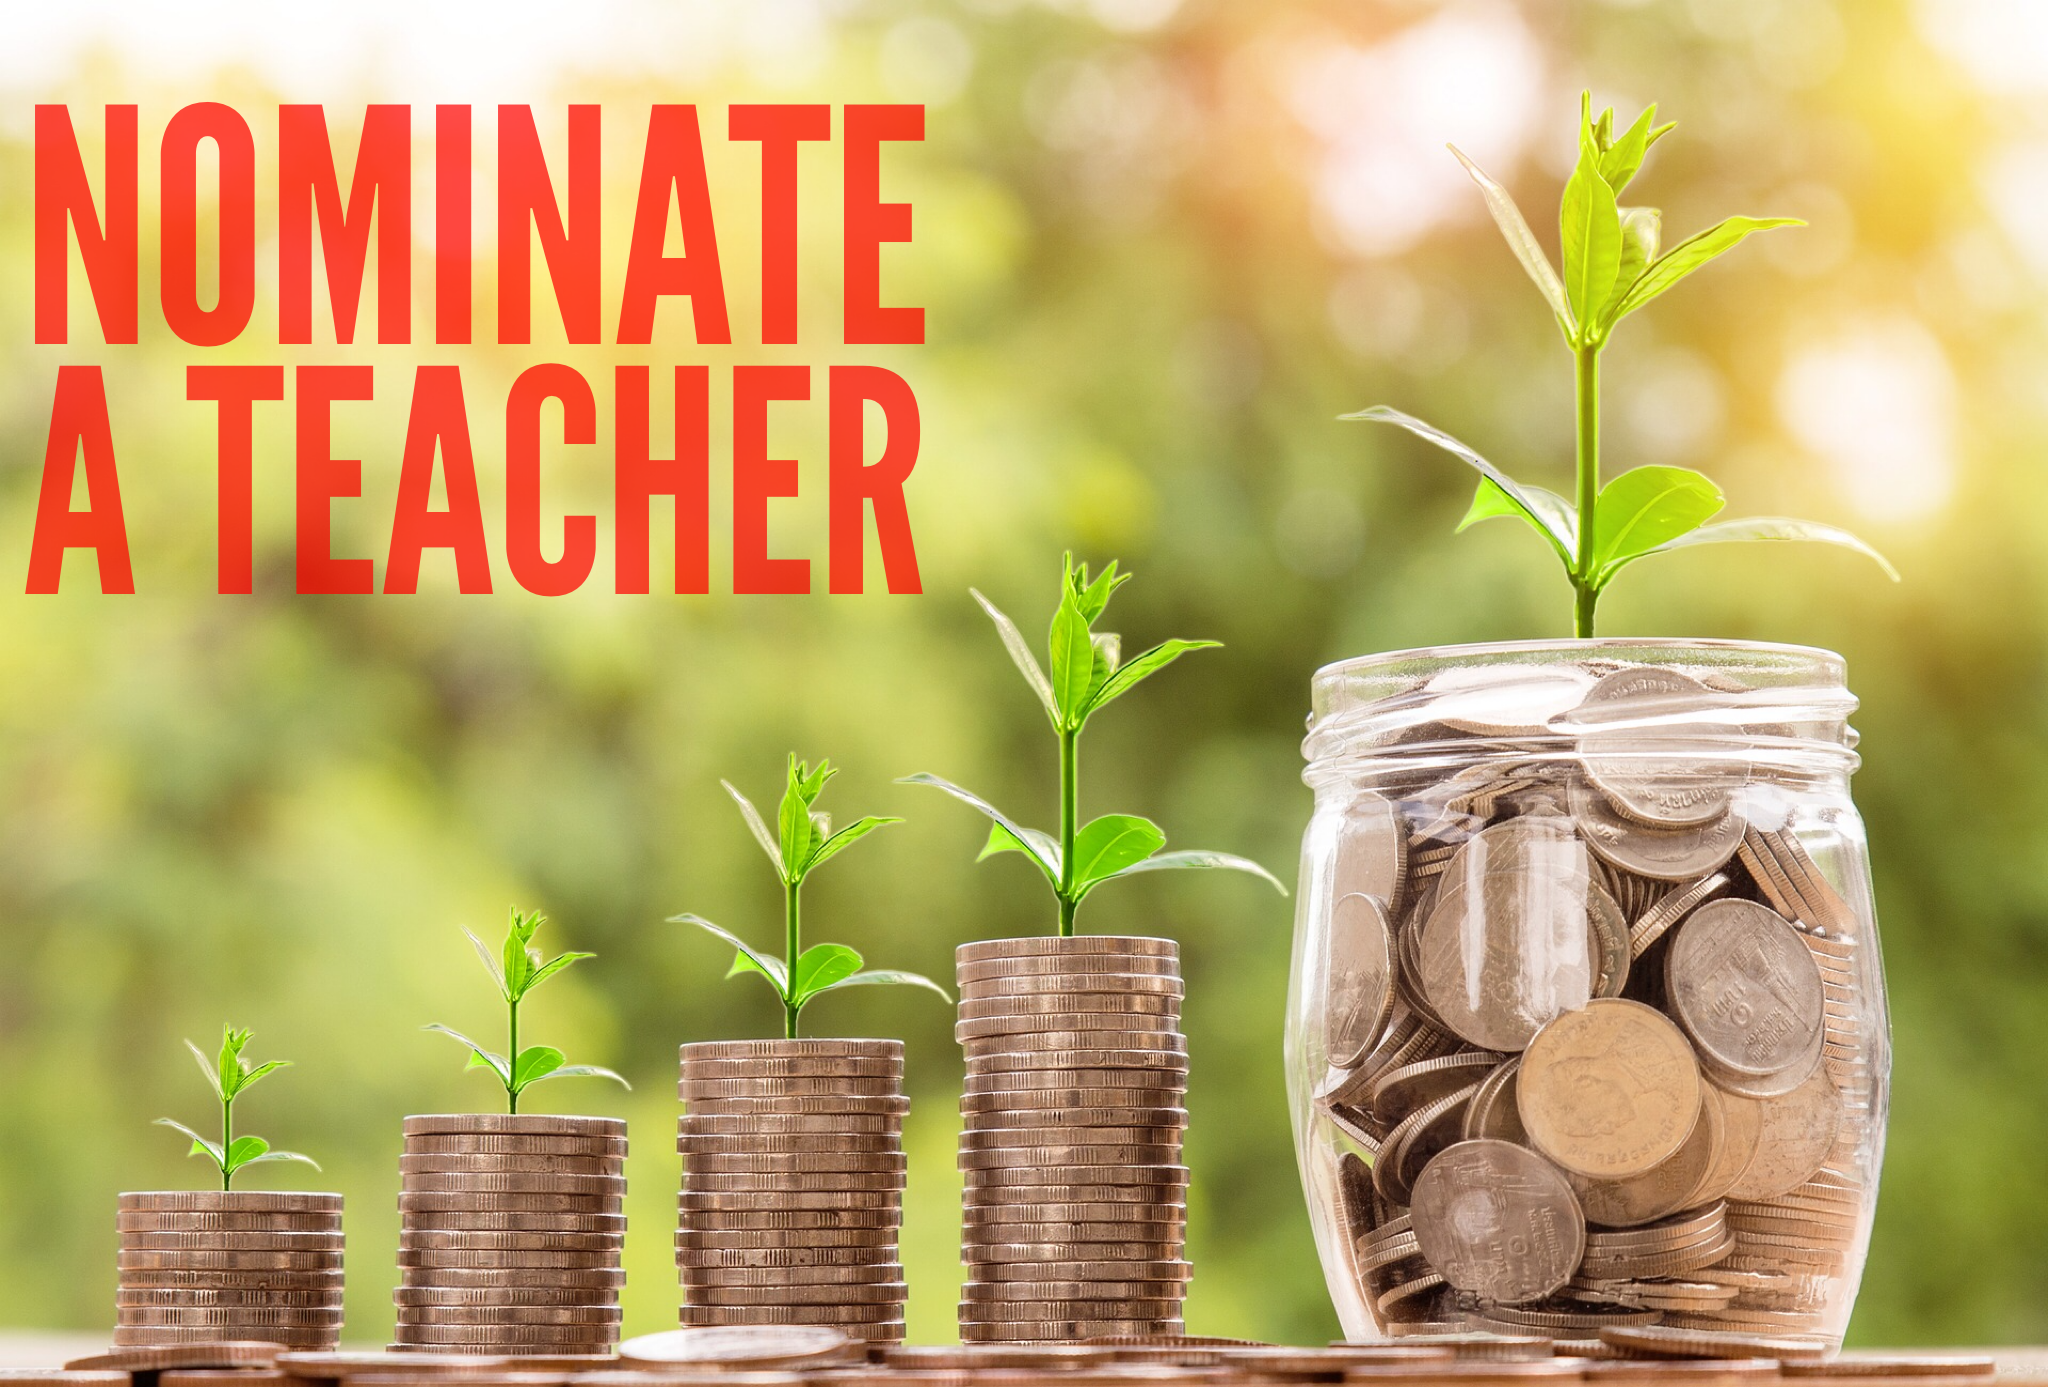 Nominate a Teacher